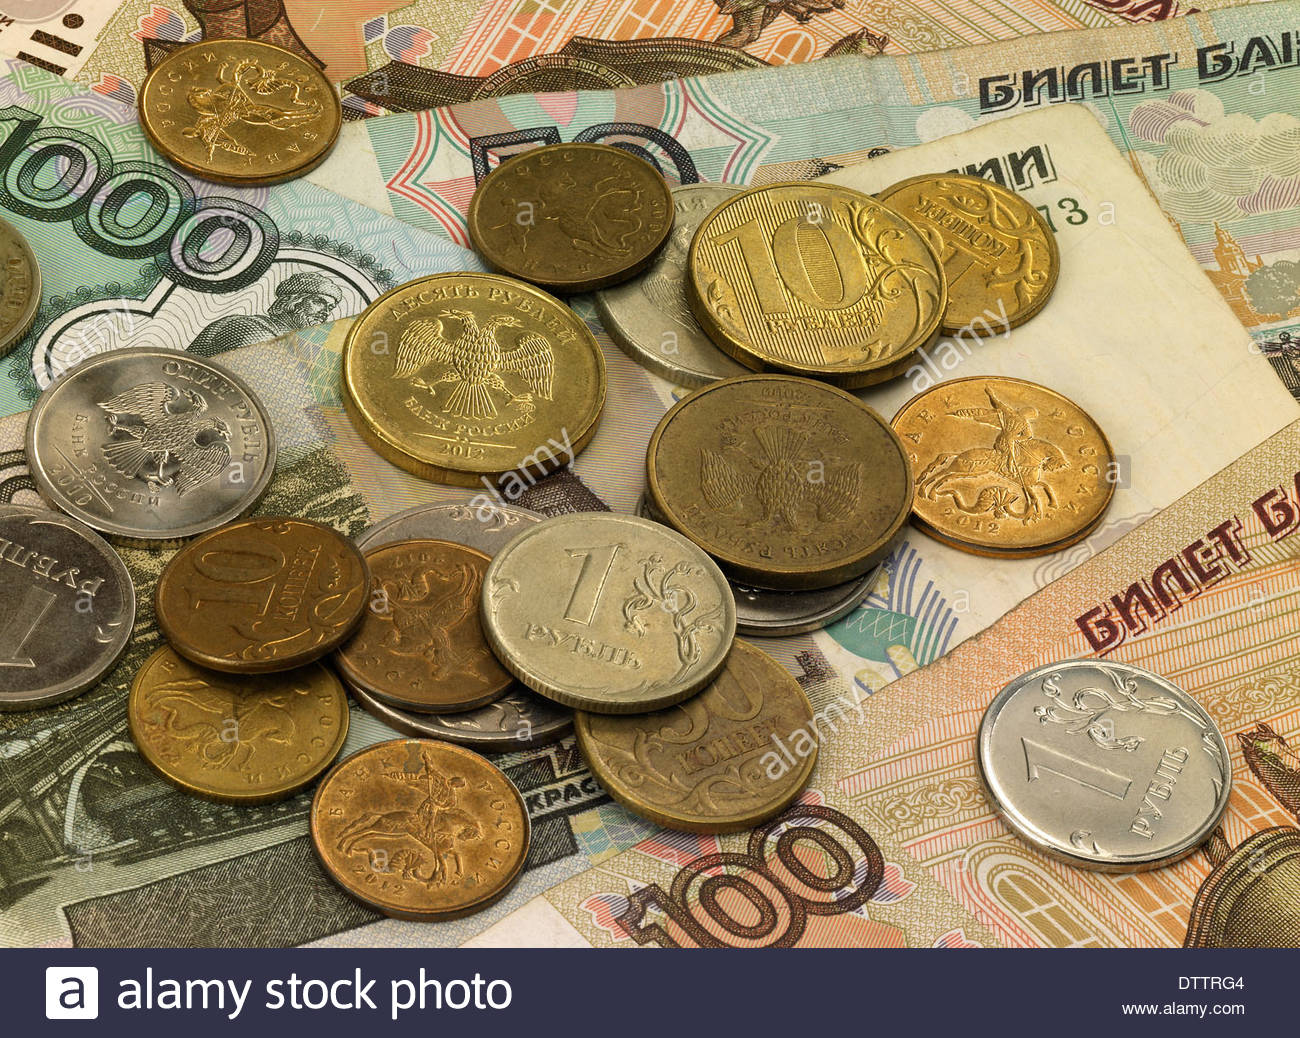 Oblique shot of Russian notes and coins laid out flat on tabletop. - Stock Image